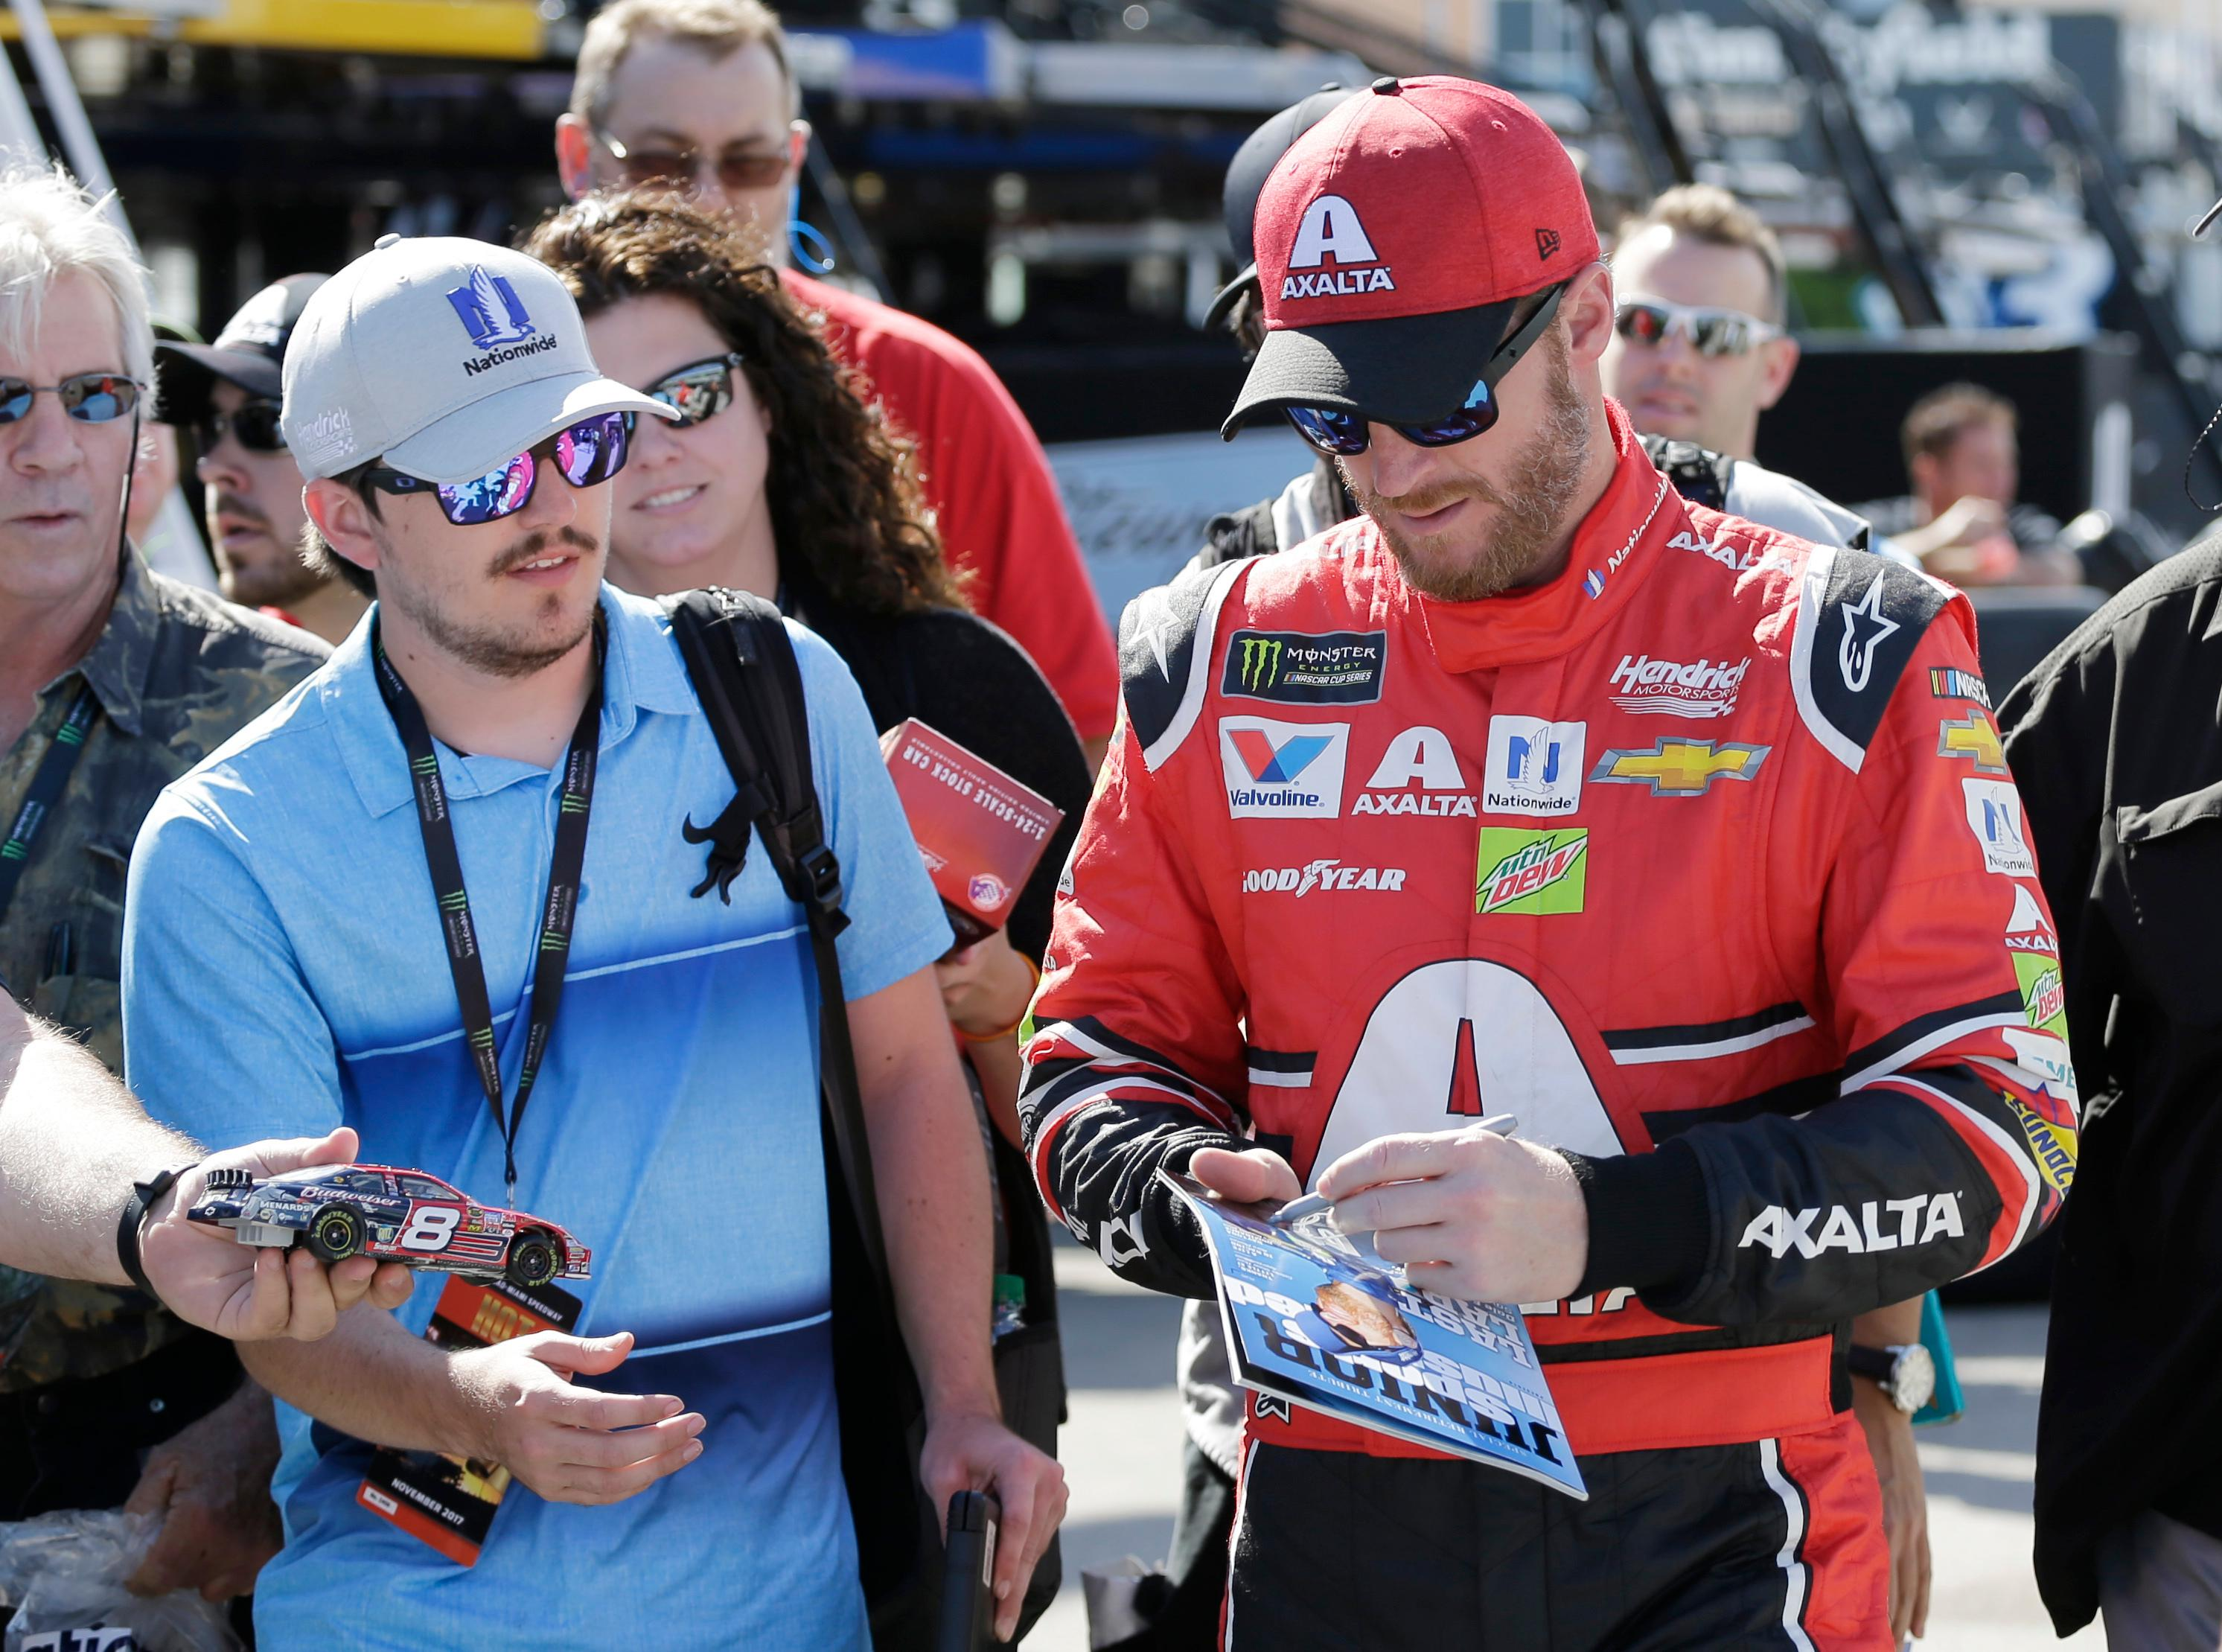 Dale Earnhardt Jr., right, gives autographs in the garage area during practice for Sunday's NASCAR Cup Series auto race at Homestead-Miami Speedway in Homestead, Fla., Friday, Nov. 17, 2017. (AP Photo/Terry Renna)